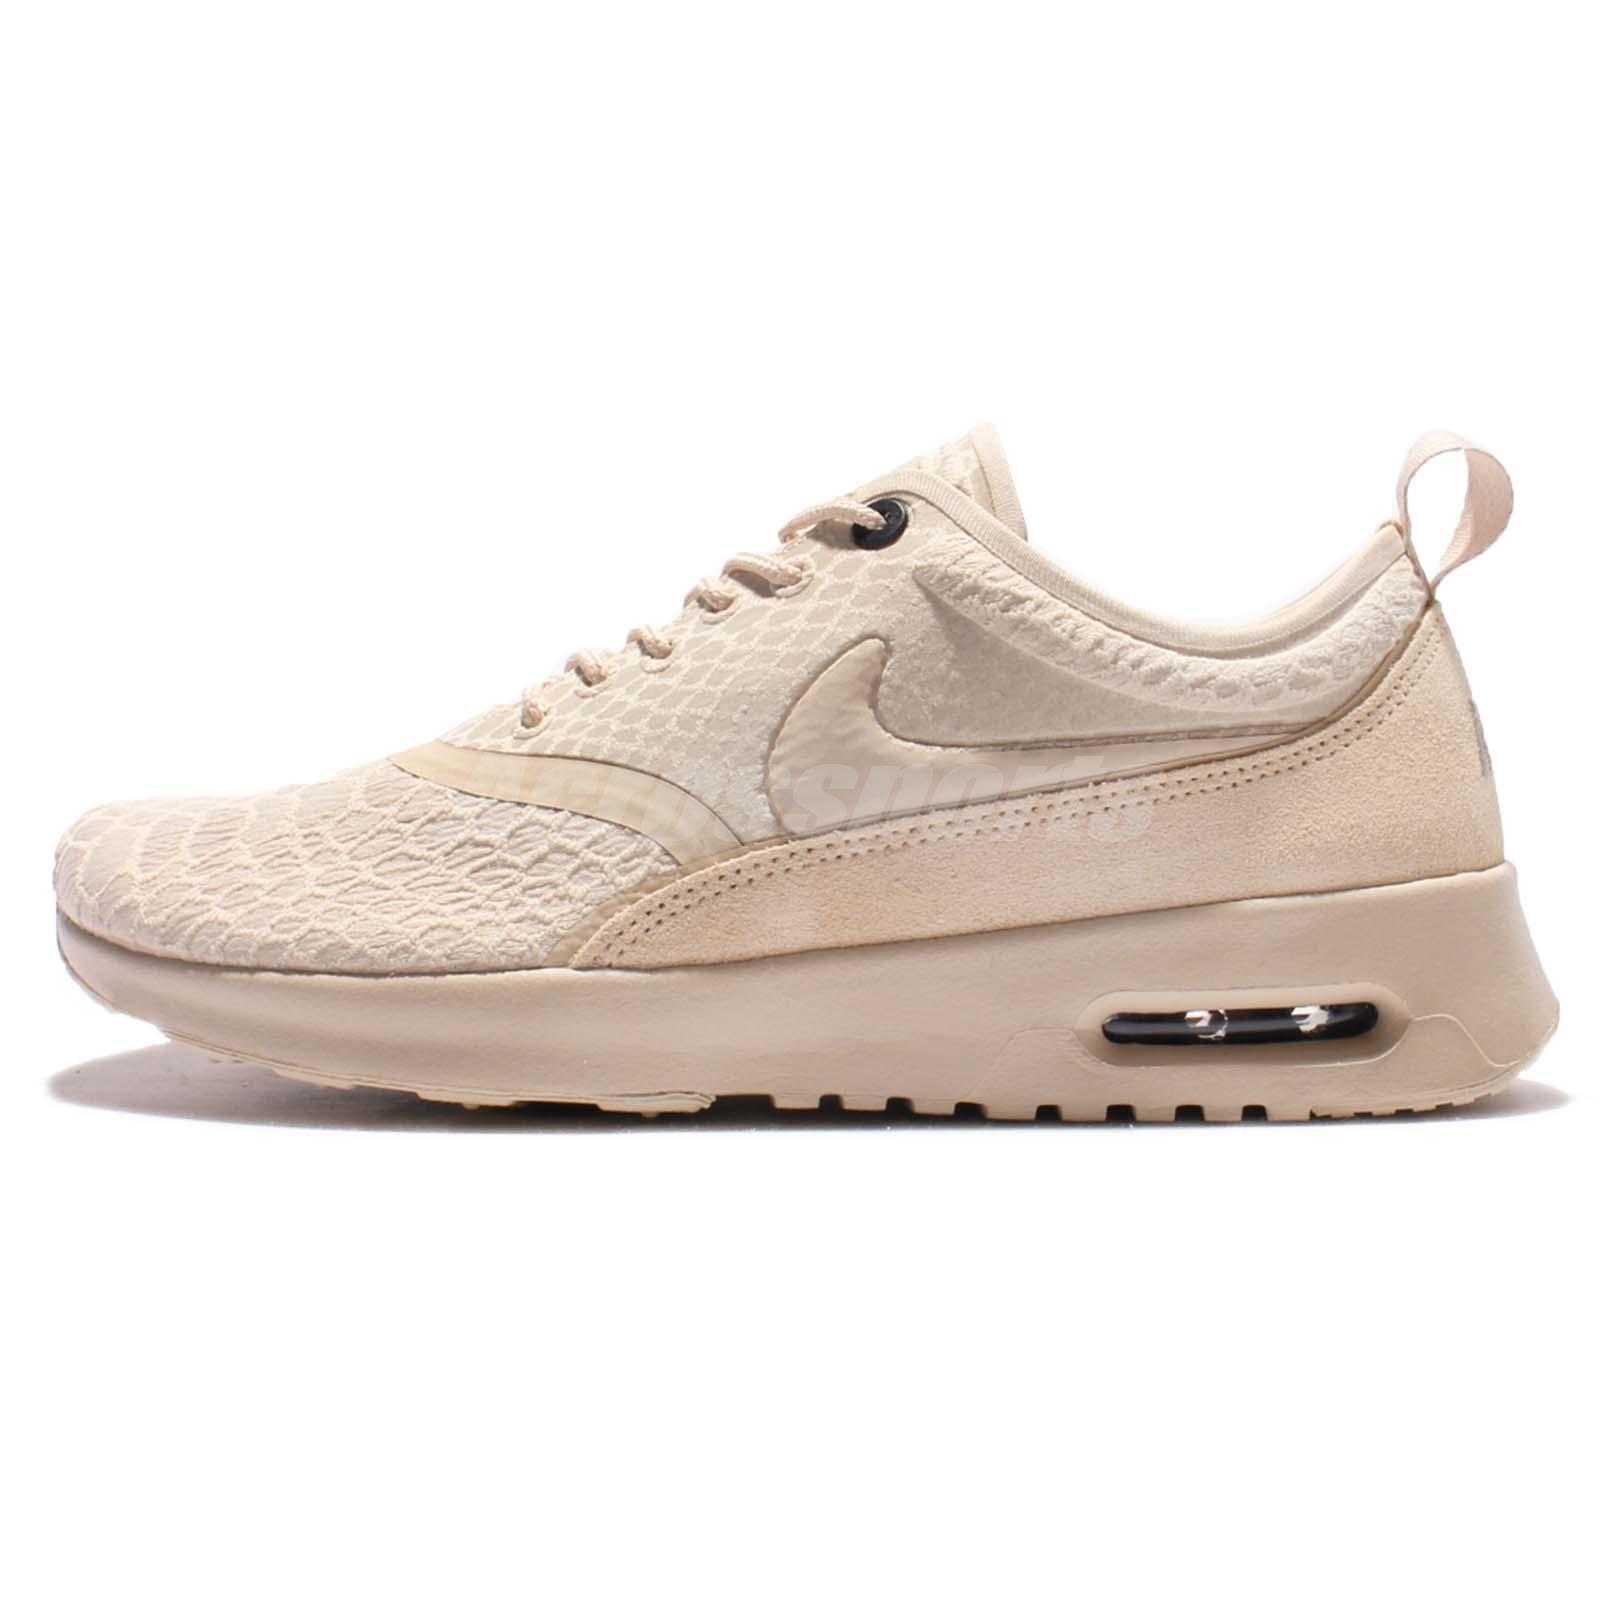 Nike Air Max Thea Women's Size